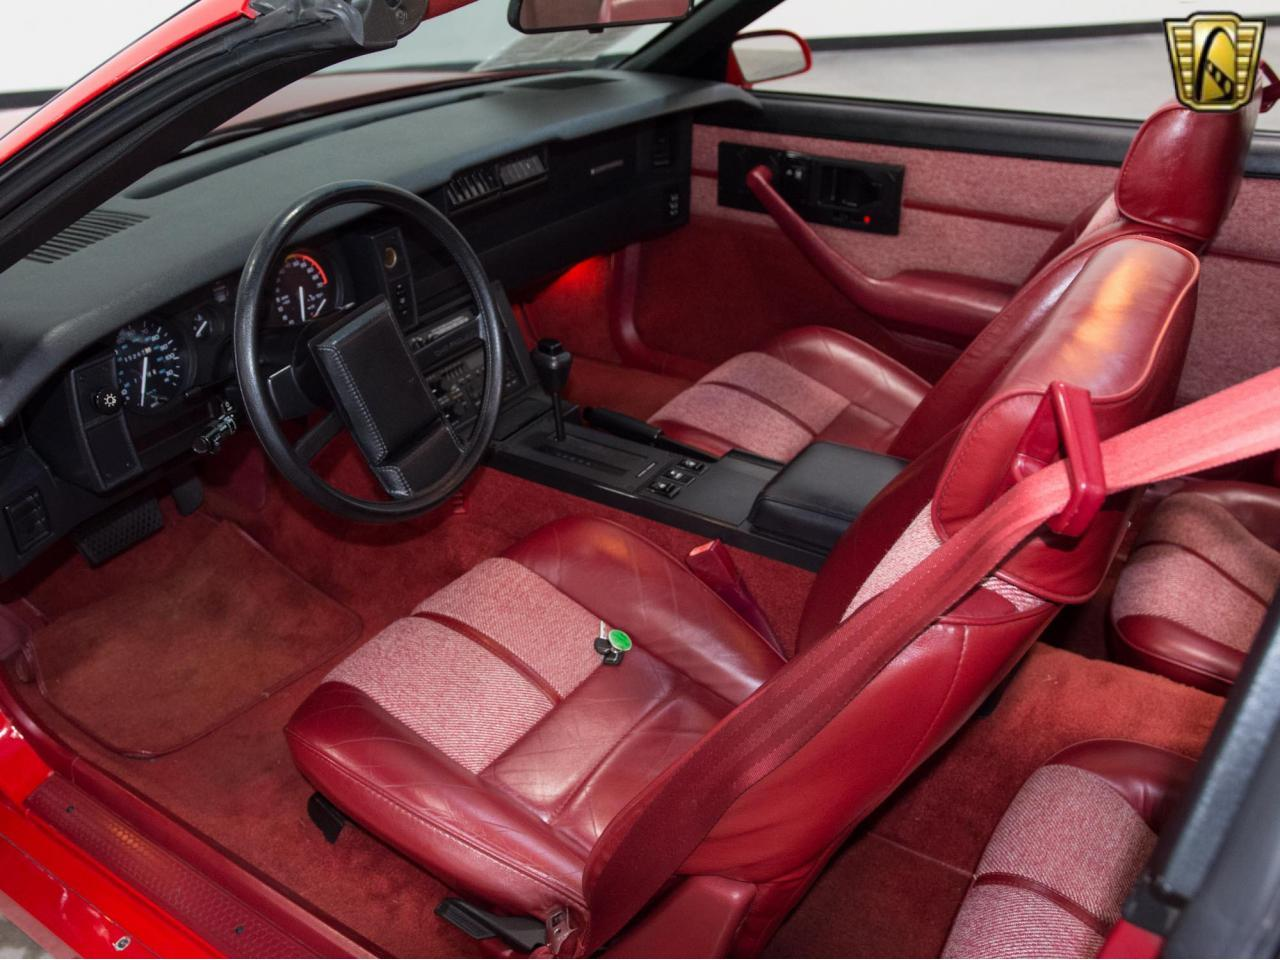 Large Picture of '89 Chevrolet Camaro located in Kenosha Wisconsin - $17,995.00 Offered by Gateway Classic Cars - Milwaukee - KE4I